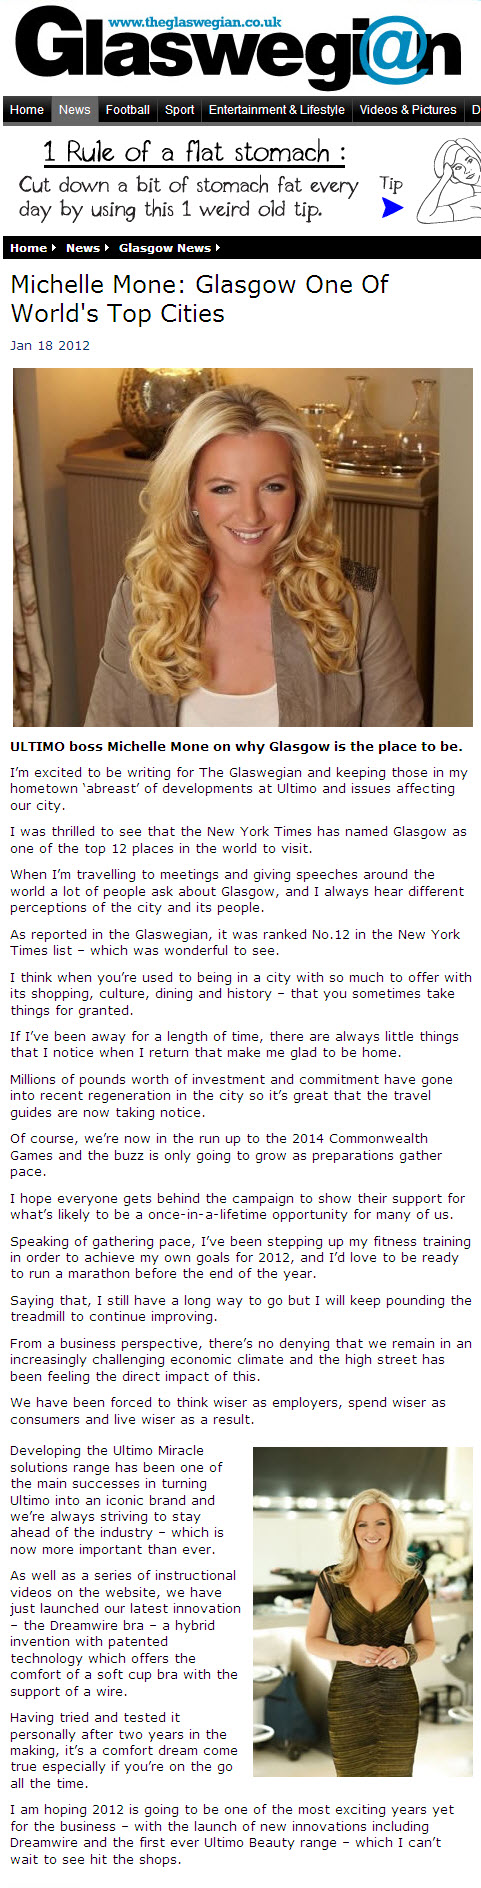 The-Glaswegian-Michelle-Mone-Wed18thJan2012